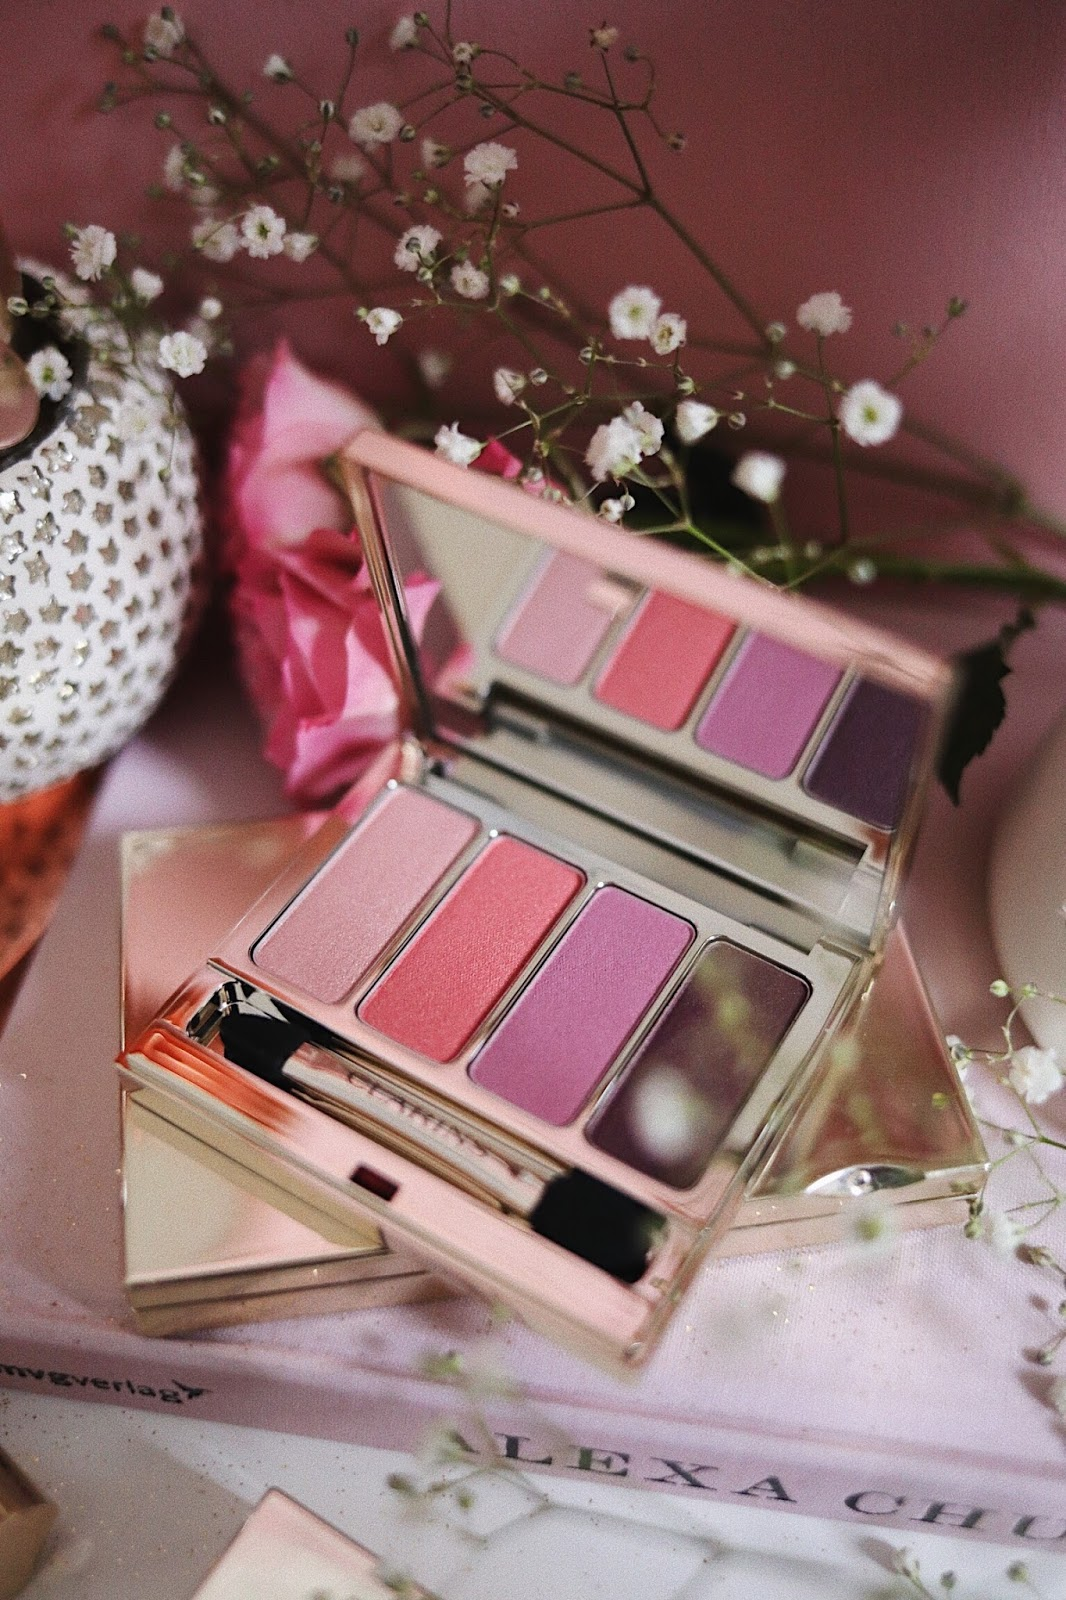 CLARINS , CLARINSFR , CLARINS FRANCE , CLARINS ACADEMIE , PRINTEMPS 2018 , PALETTE 4 COULEURS , LOVELY ROSE , 07 , rose mademoiselle , rosemademoiselle , revue , avis , Swatch